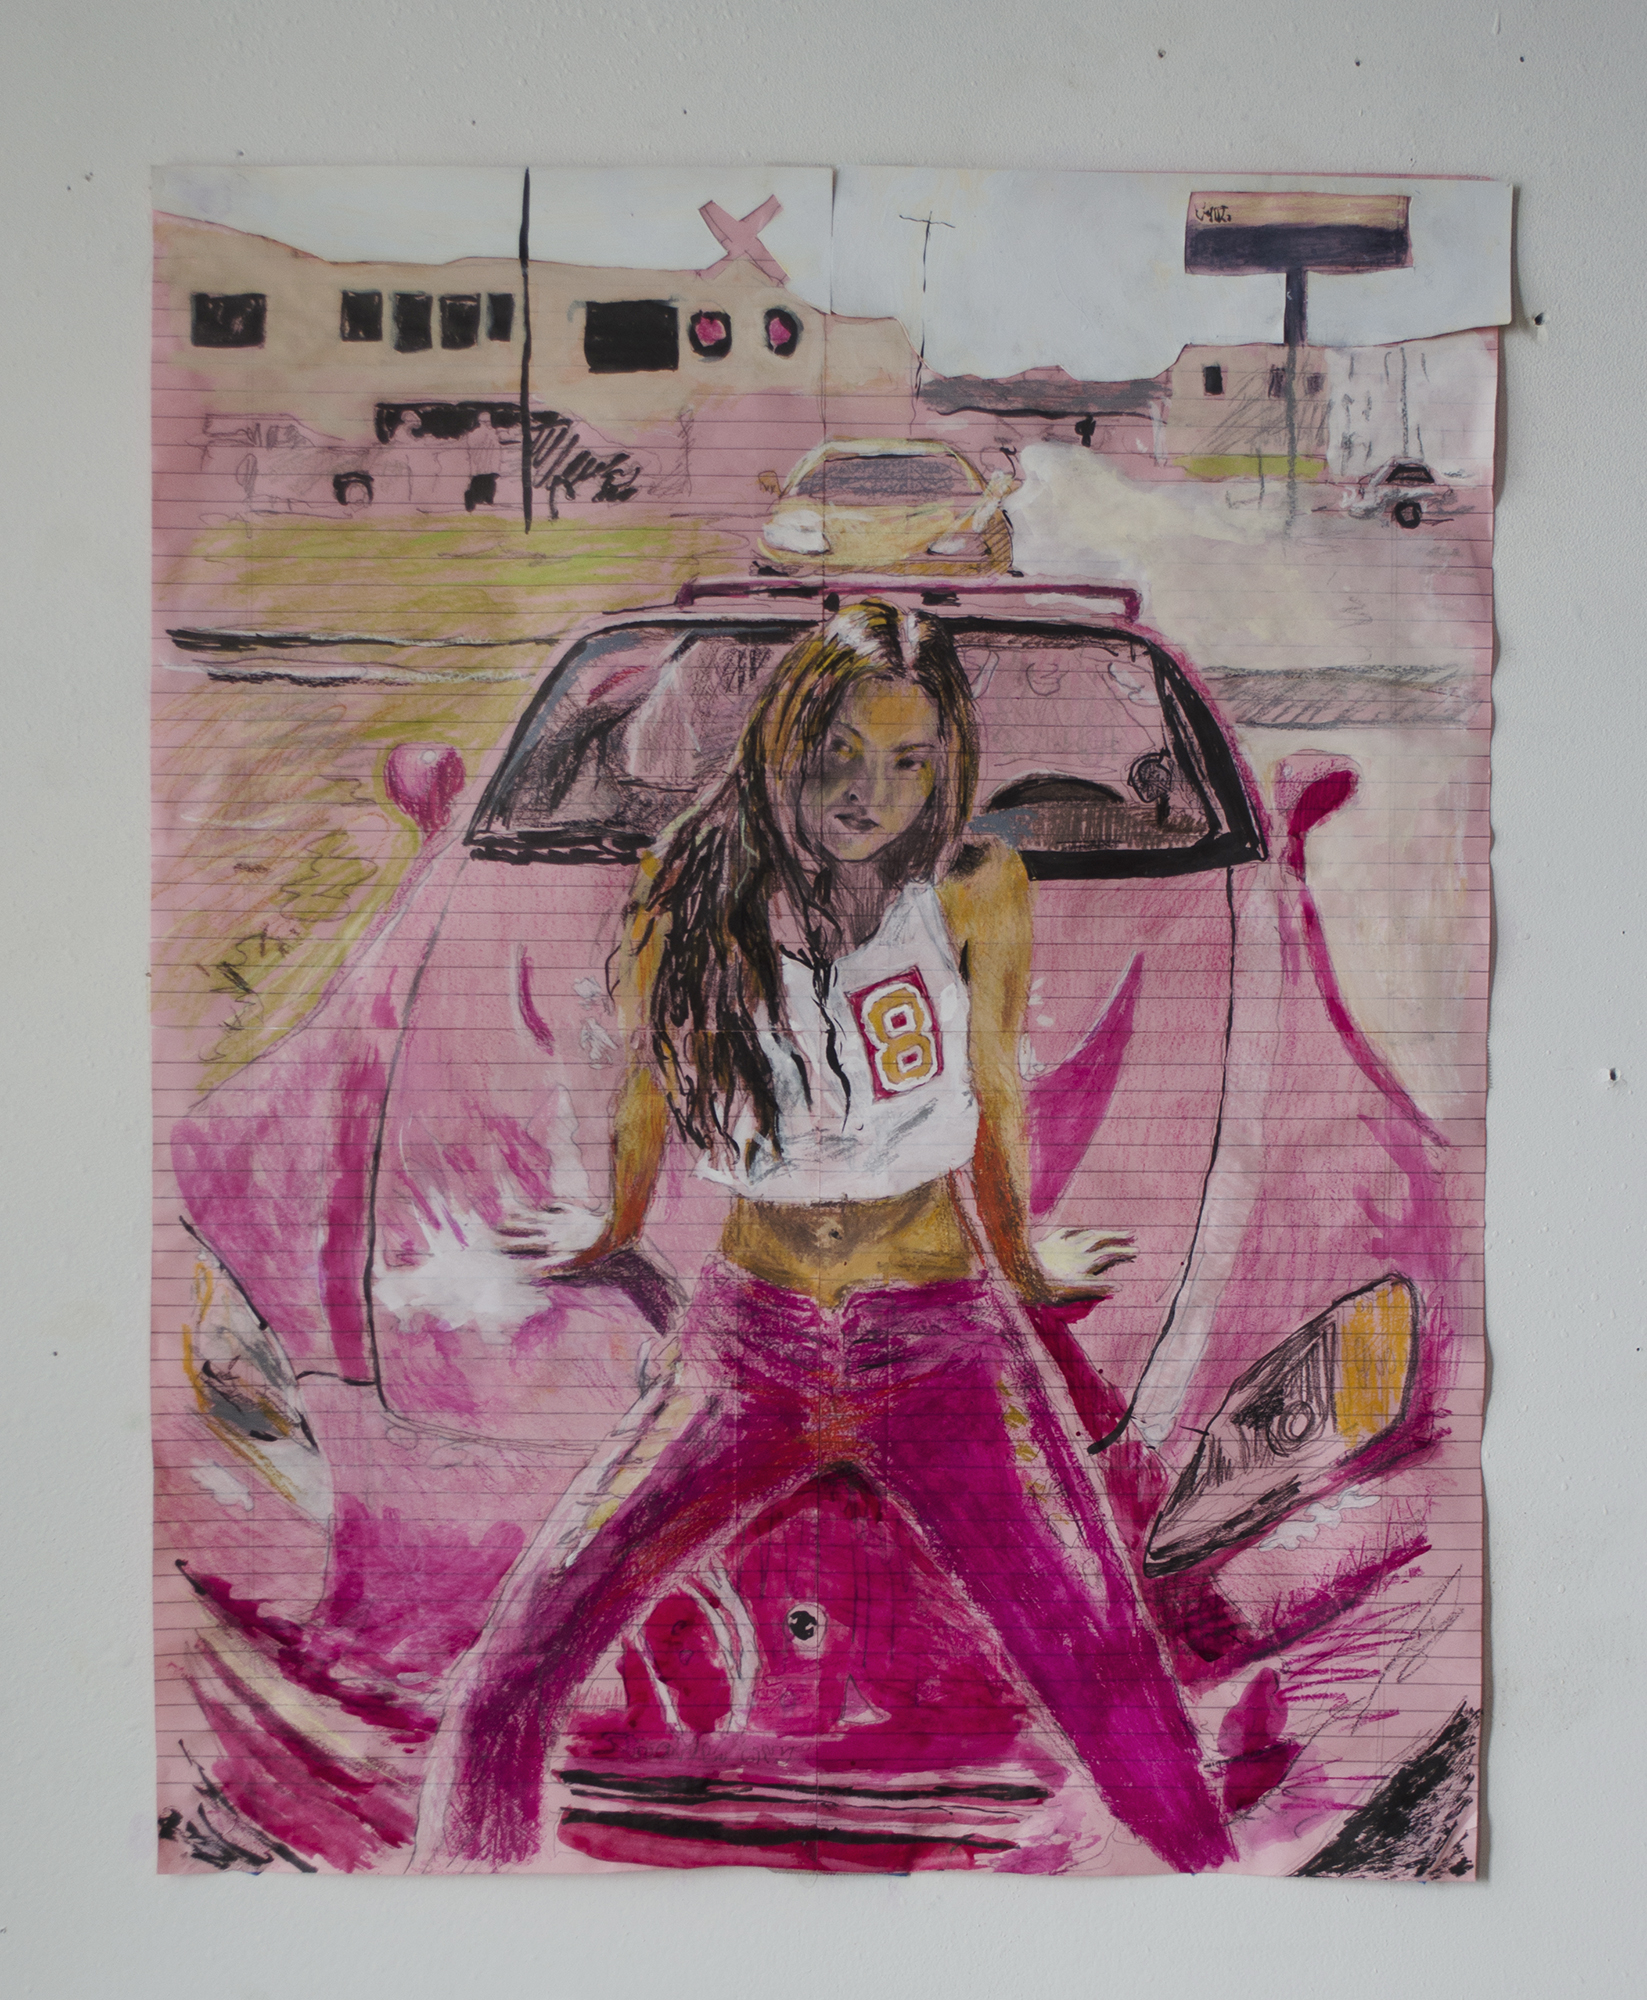 Gaijin Girl   Pencil, ink, and paper collage on legal paper  2016